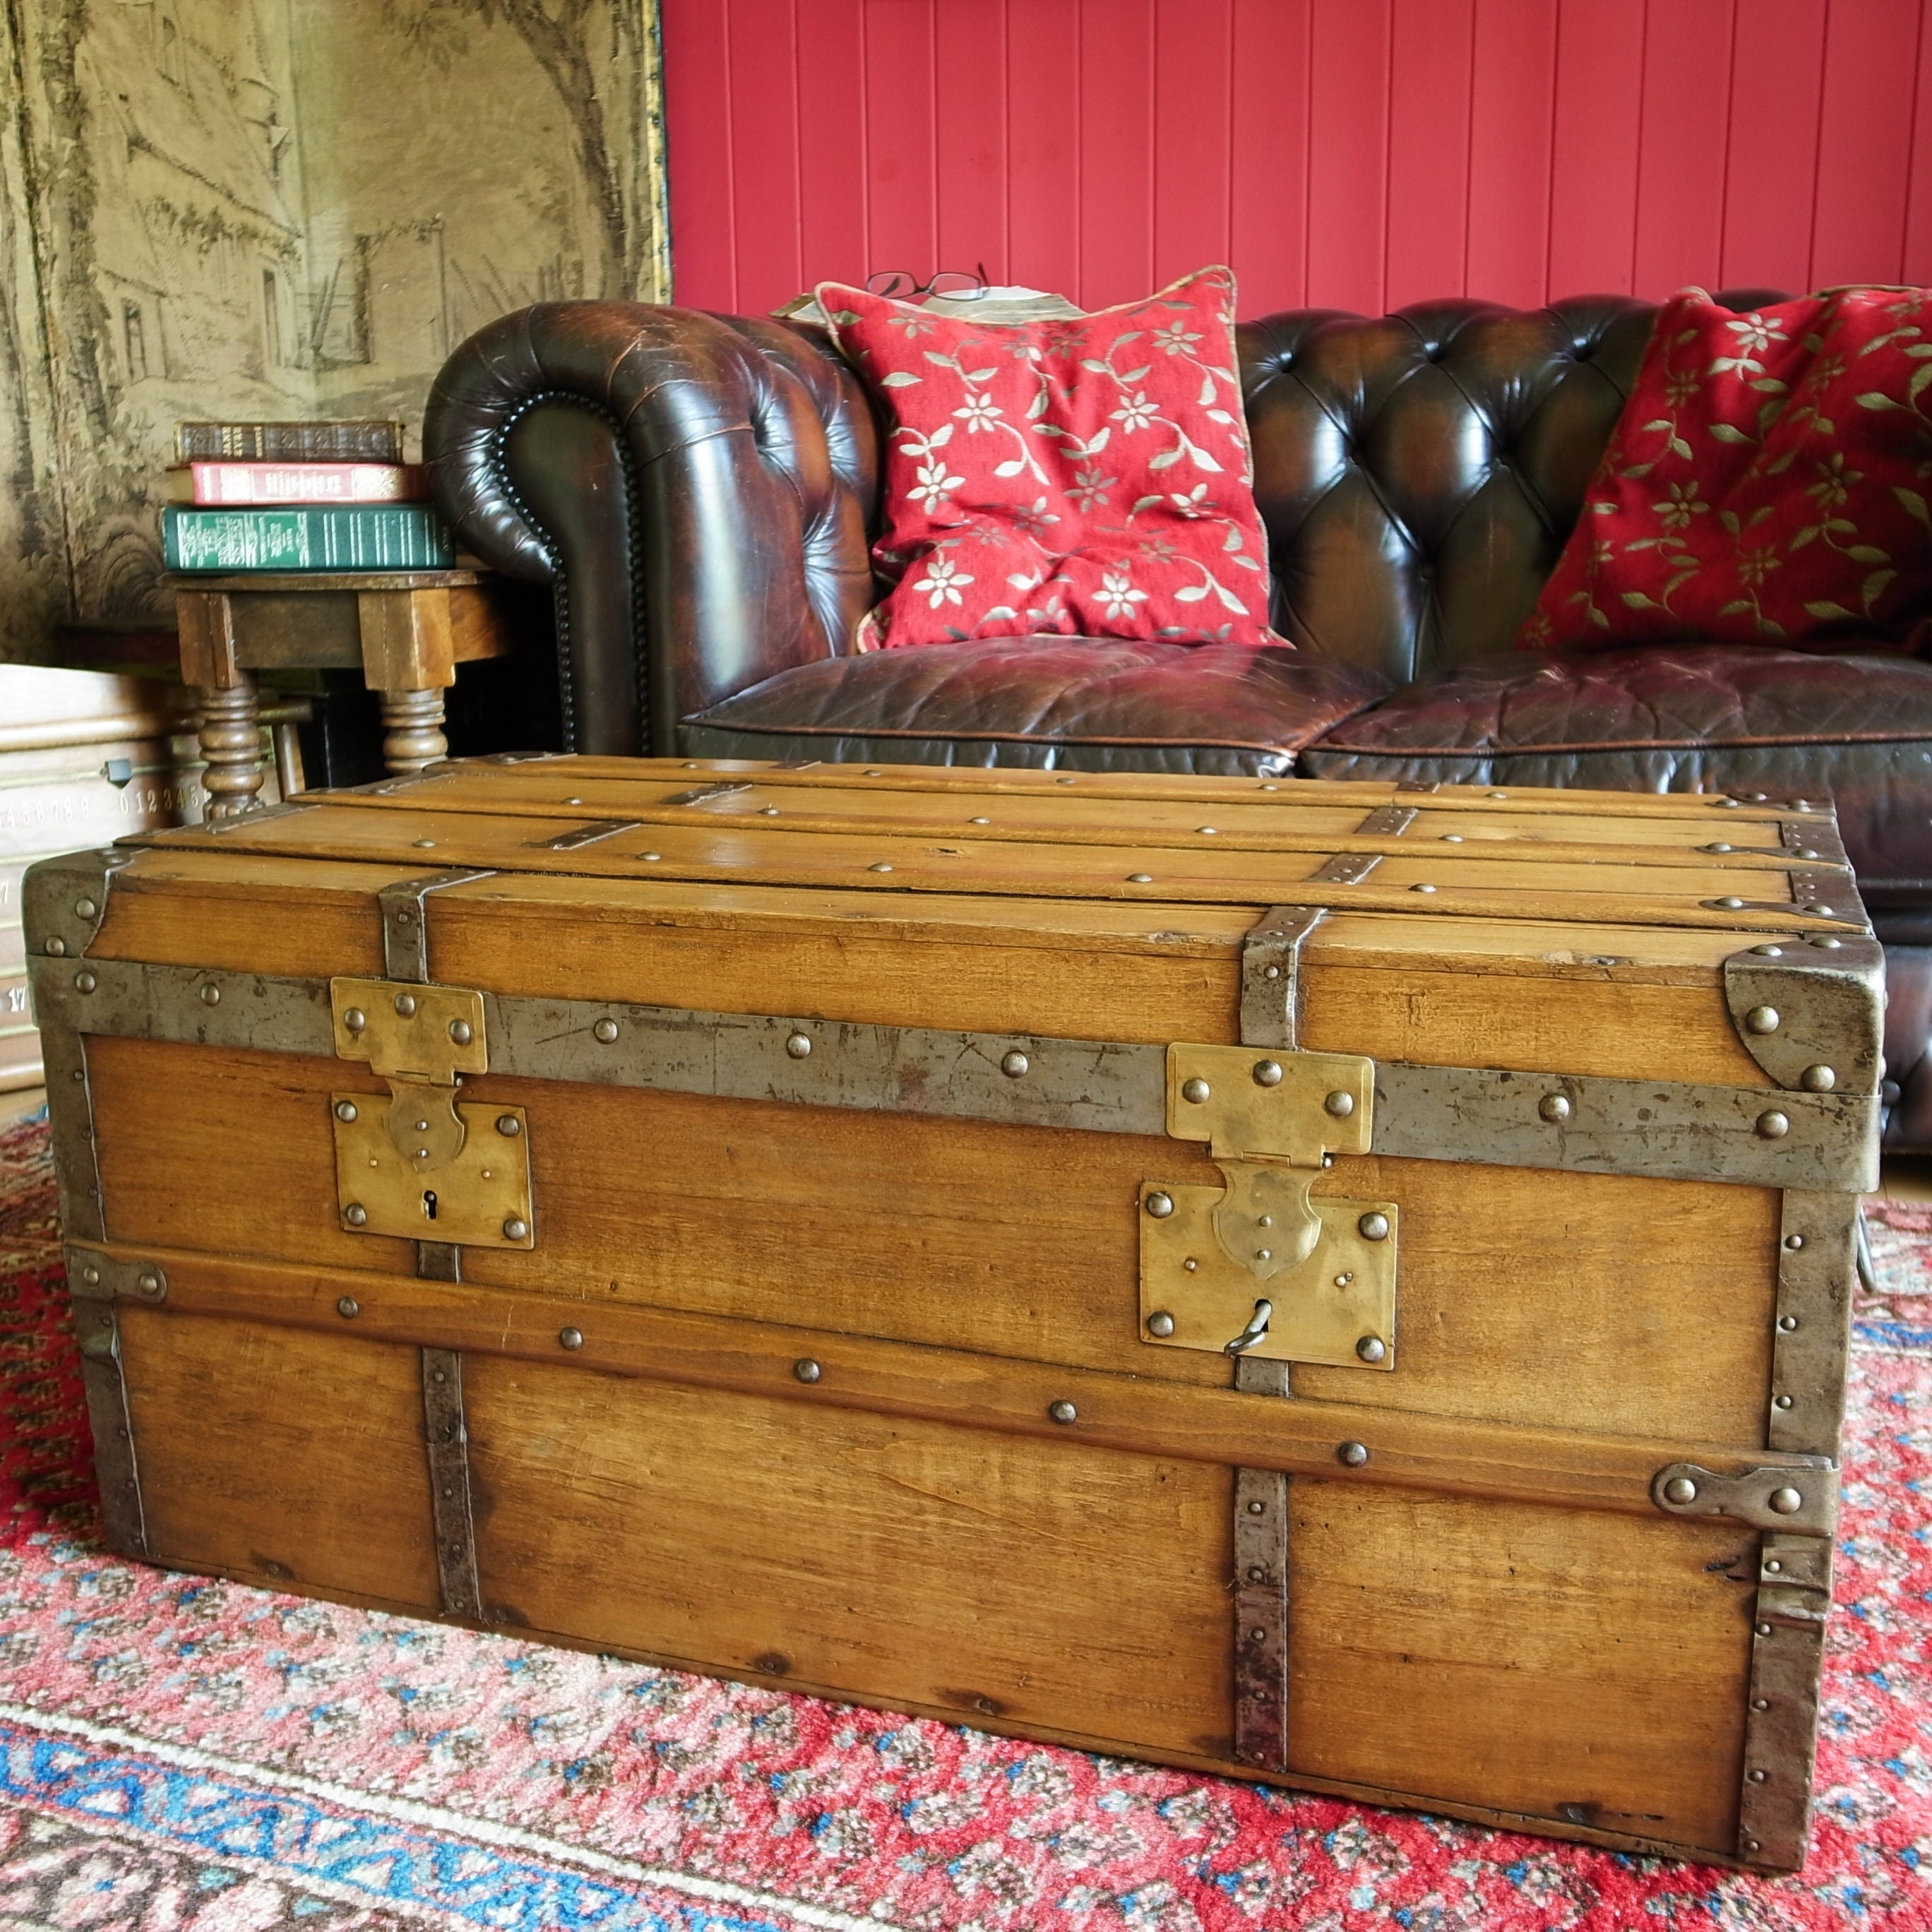 RECLAIMED ANTIQUE TRUNK Coffee Table Victorian Steamer Trunk Rustic Storage Chest Vintage French Country Farmhouse Decor